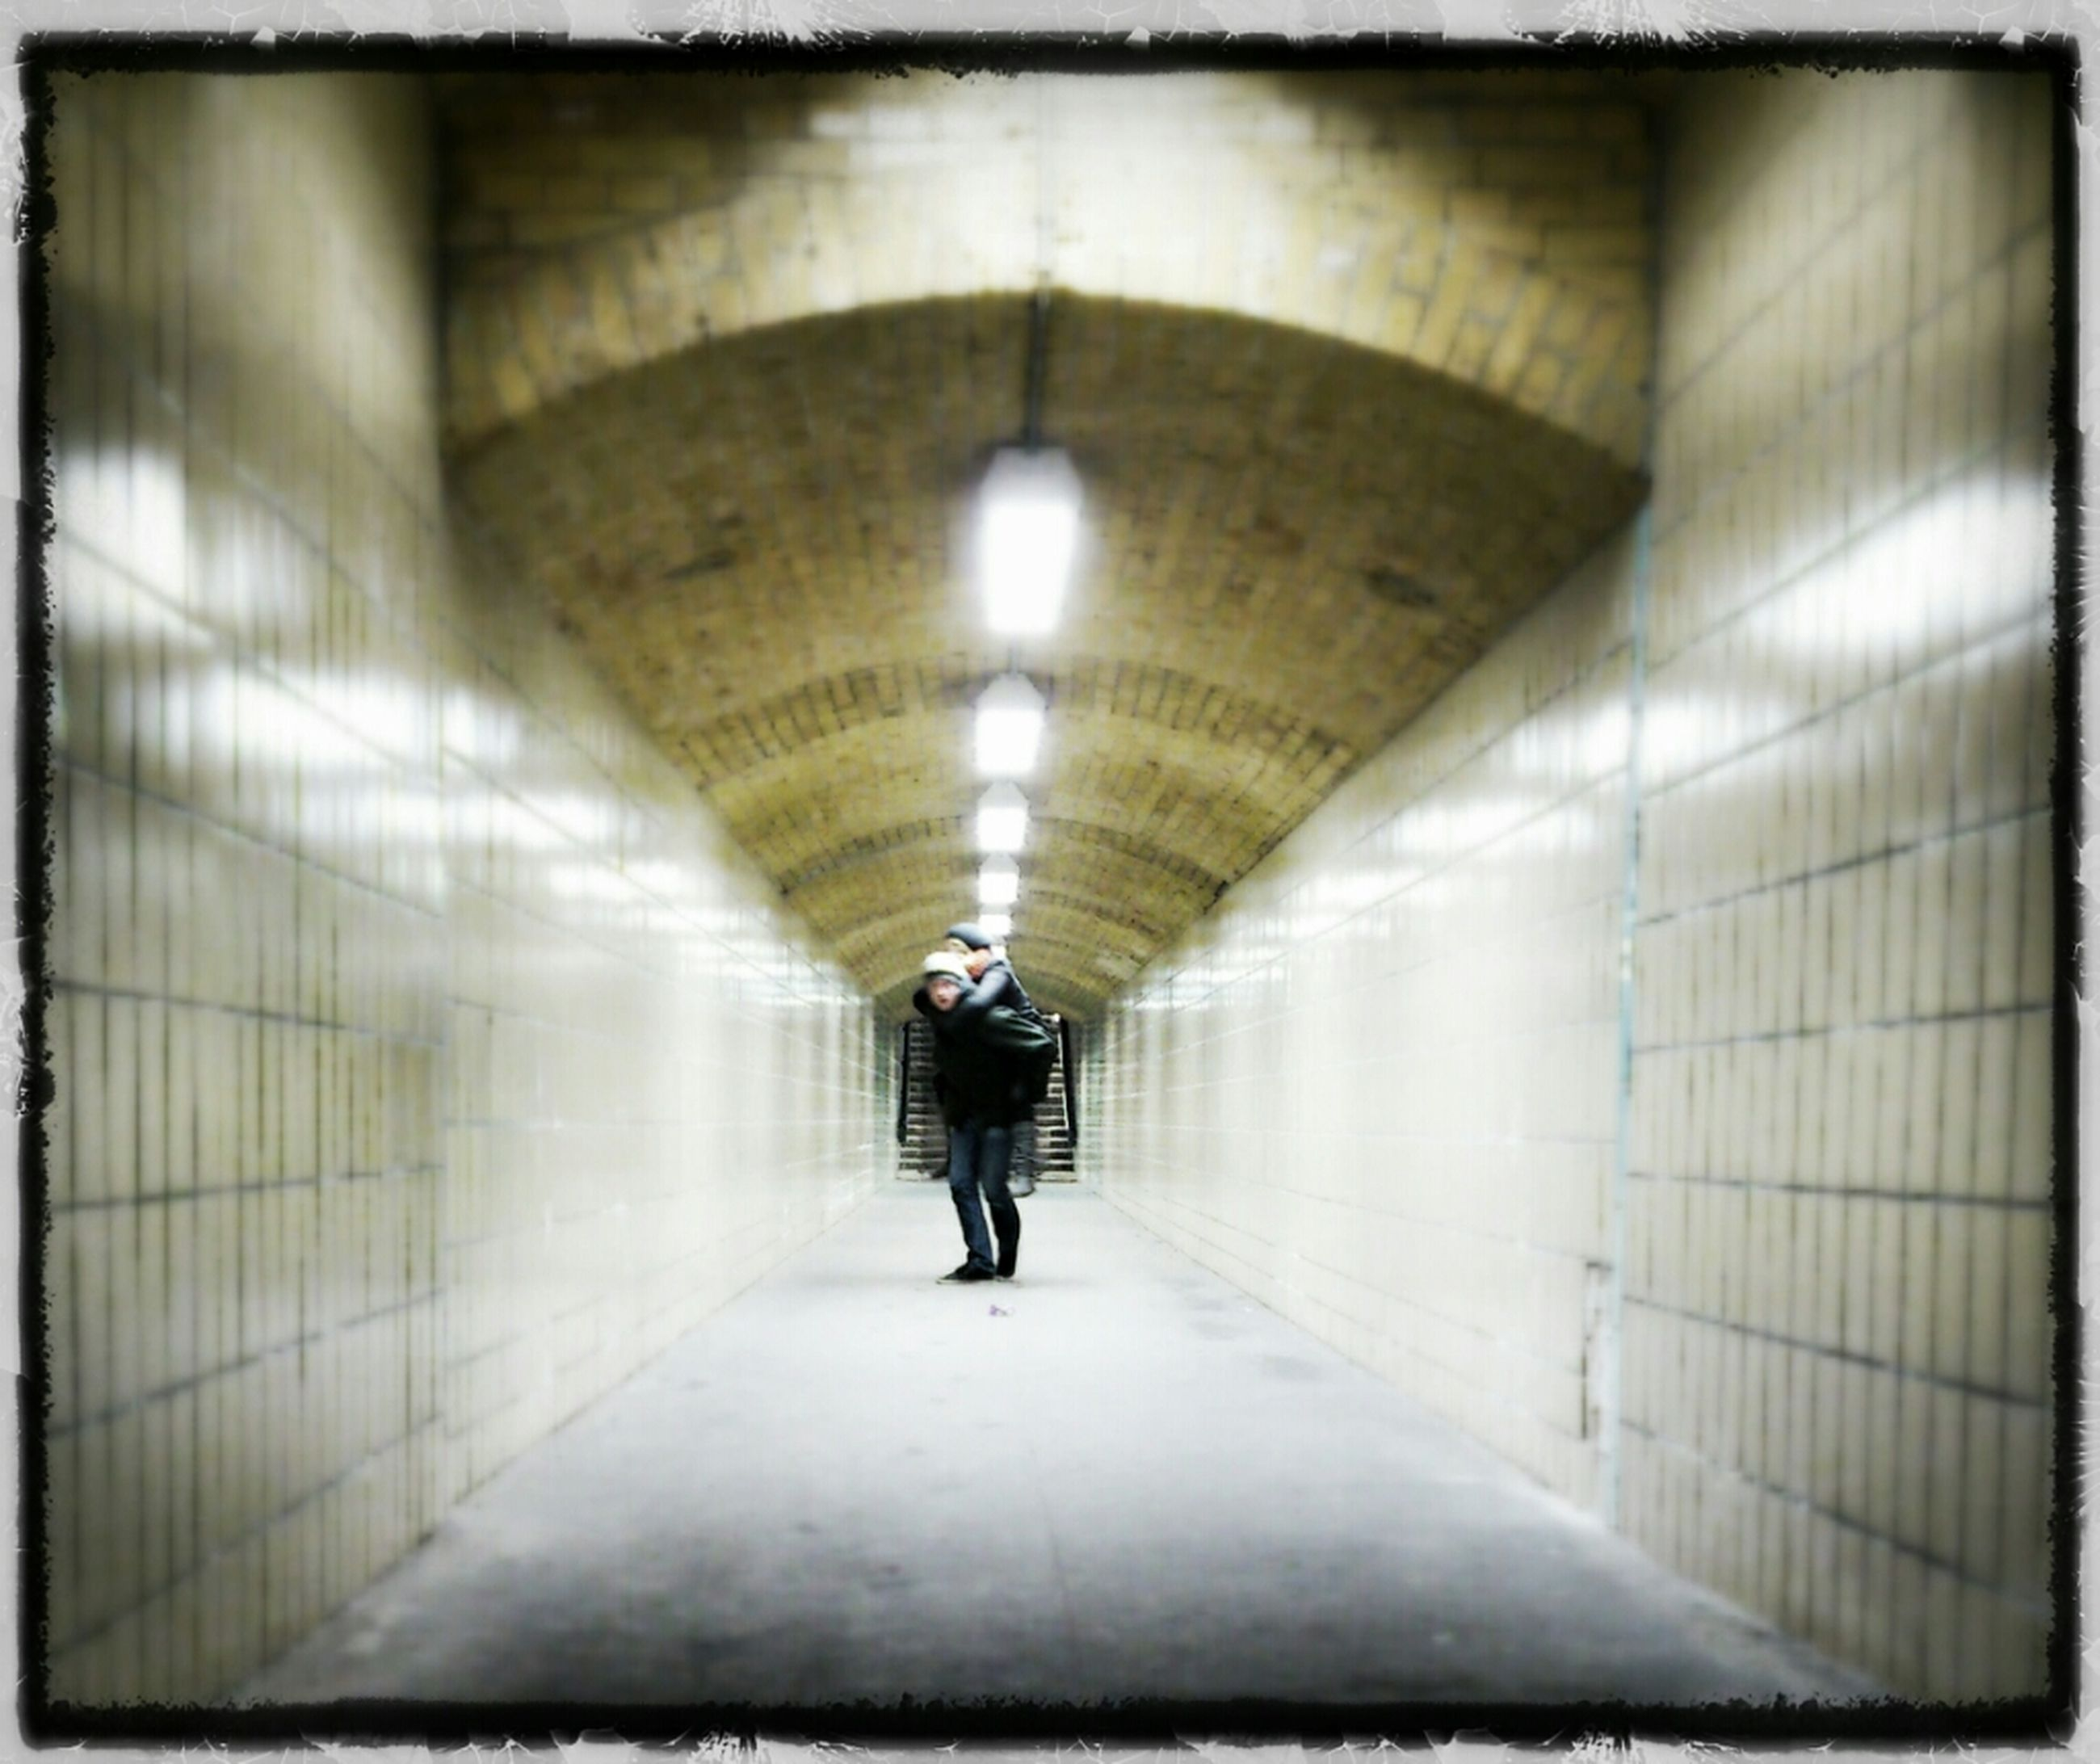 indoors, full length, tunnel, walking, illuminated, ceiling, lifestyles, rear view, men, the way forward, architecture, built structure, lighting equipment, corridor, leisure activity, transportation, arch, diminishing perspective